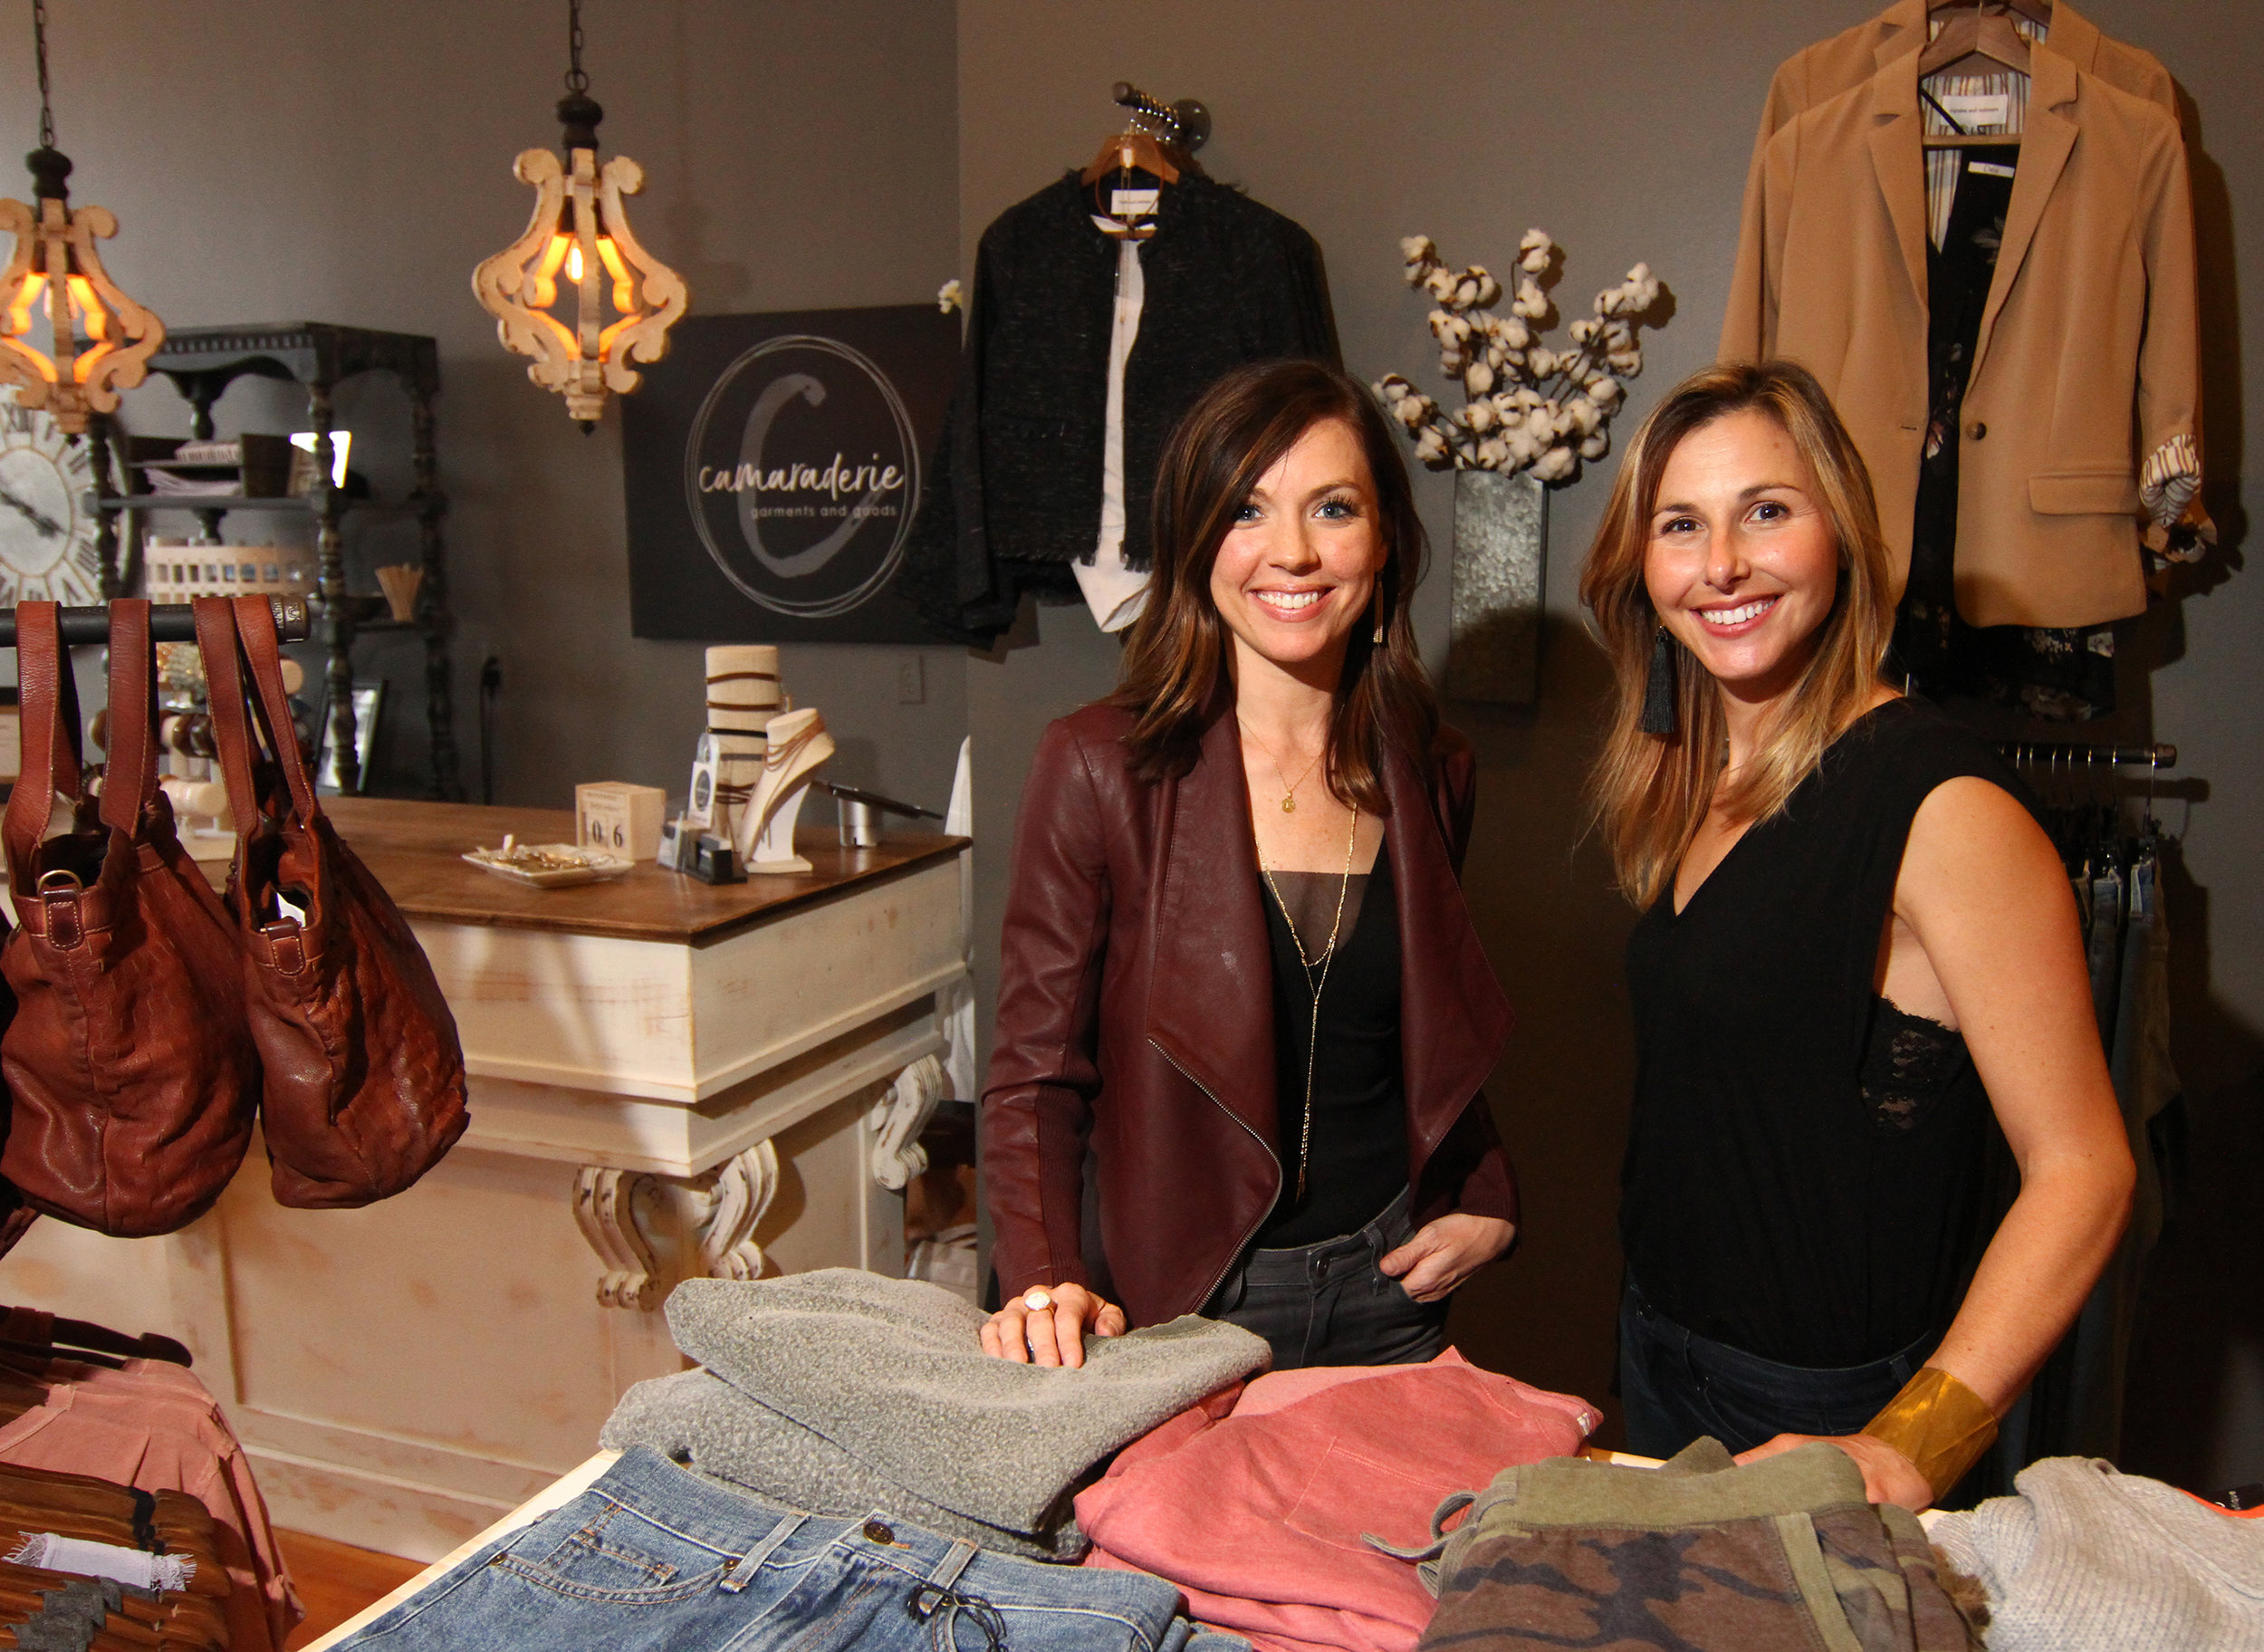 Private Shoppingfor Three at Camaraderie - Private and personal shopping experience at Camaraderie Boutique in Downtown Nashua including gift cards for you and two of your friends and champagne. Learn about the latest styles and trends with the help of a professional stylist and find something new to add to your wardrobe.Donated by: Camaraderie Boutique